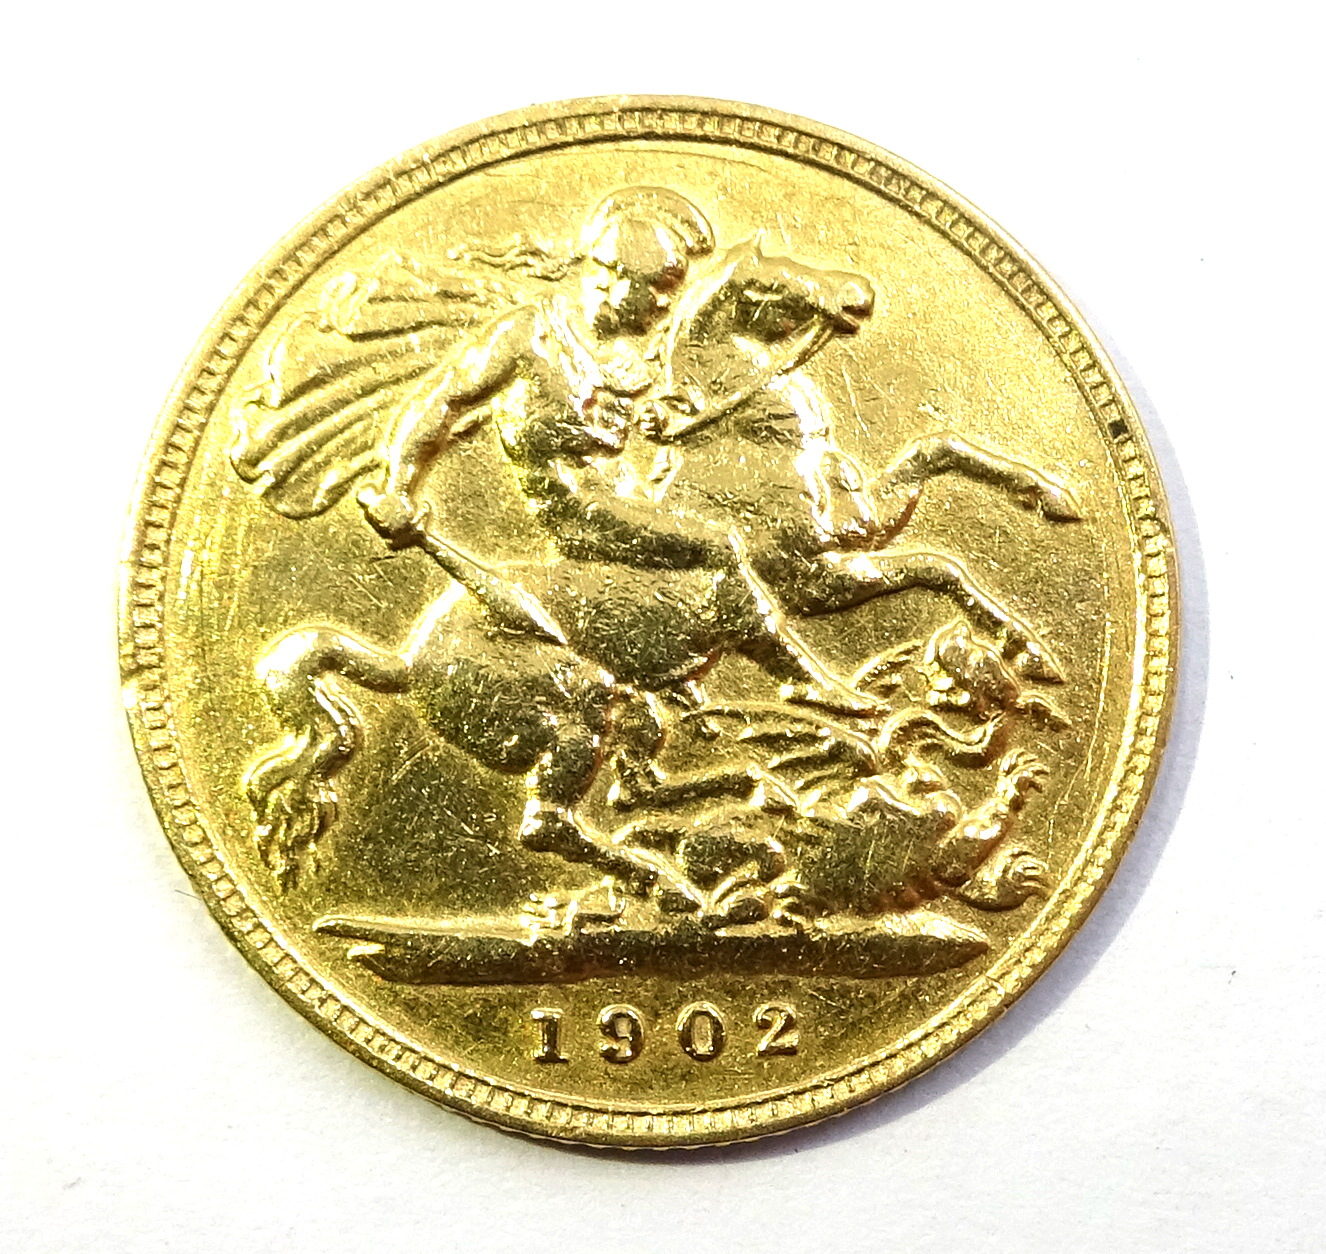 Lot 1051 - 1902 gold half sovereign Condition Report & Further Details <a href='//www.